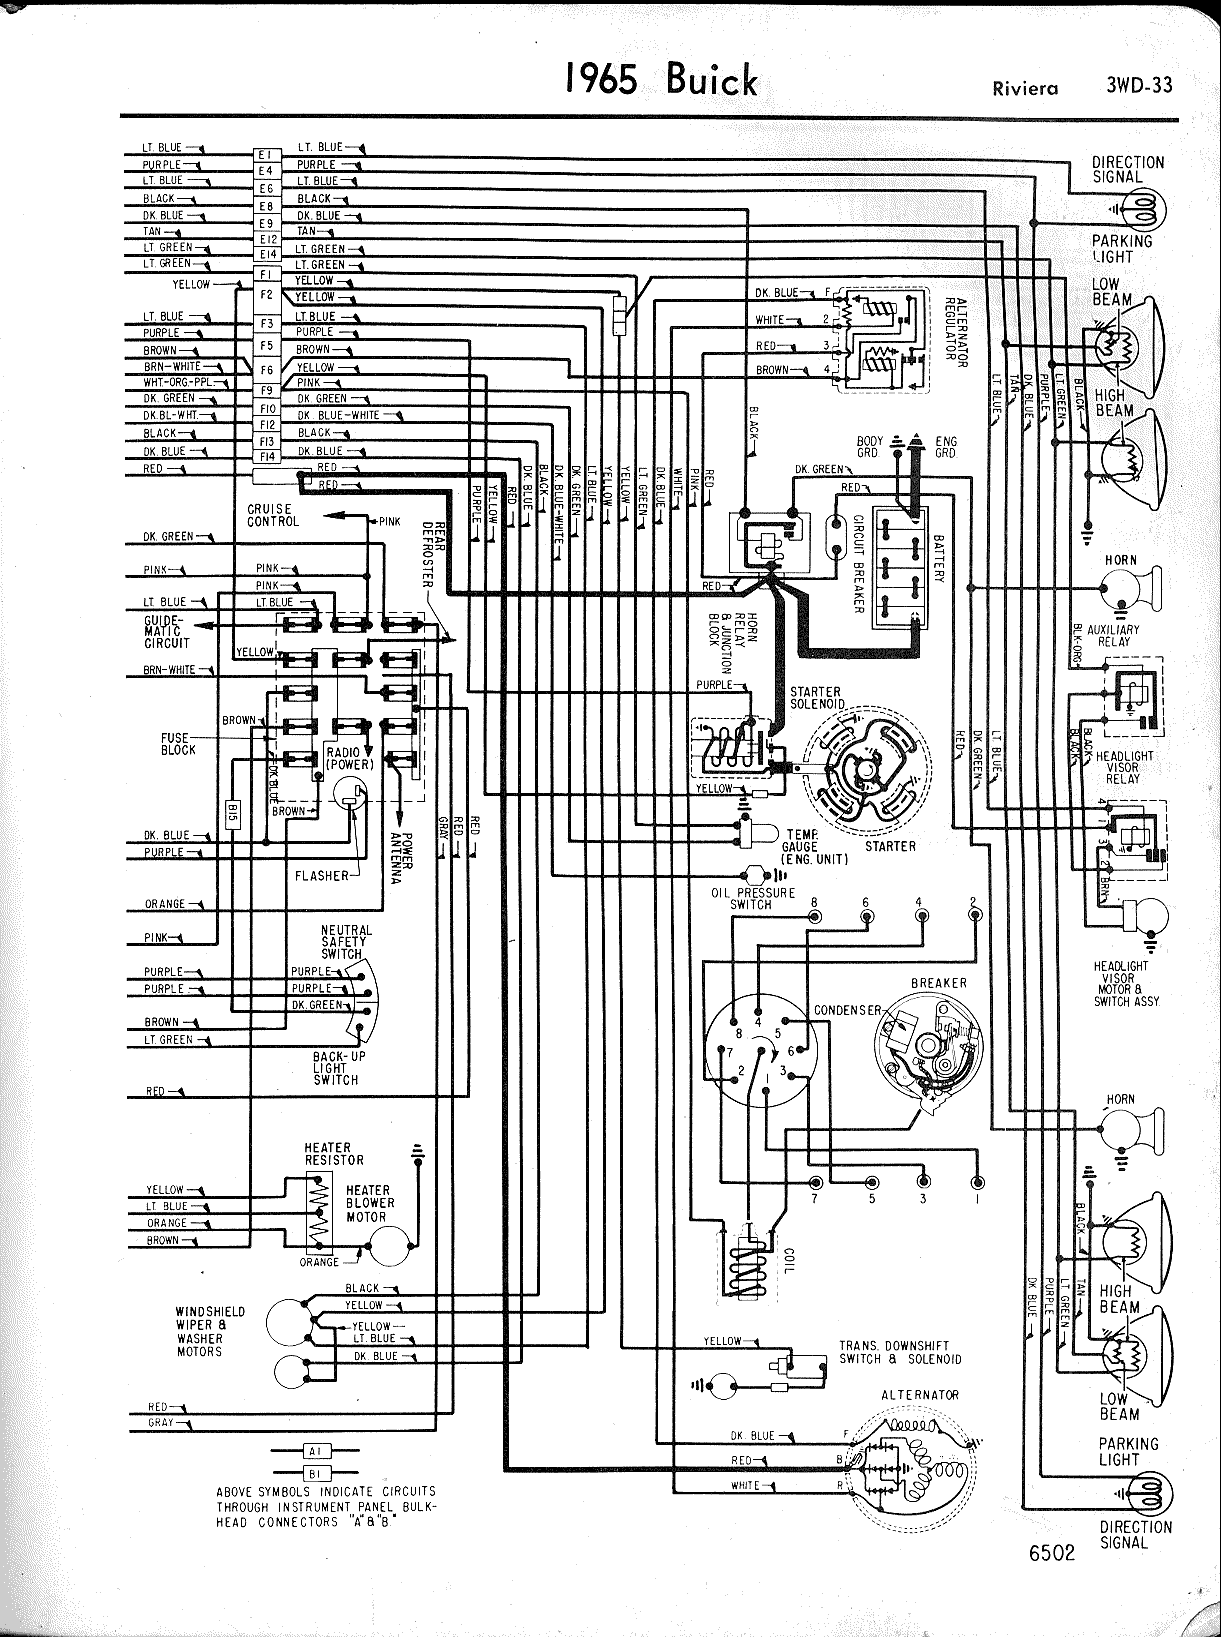 Mwirebuic Wd on 1965 Buick Skylark Wiring Diagram